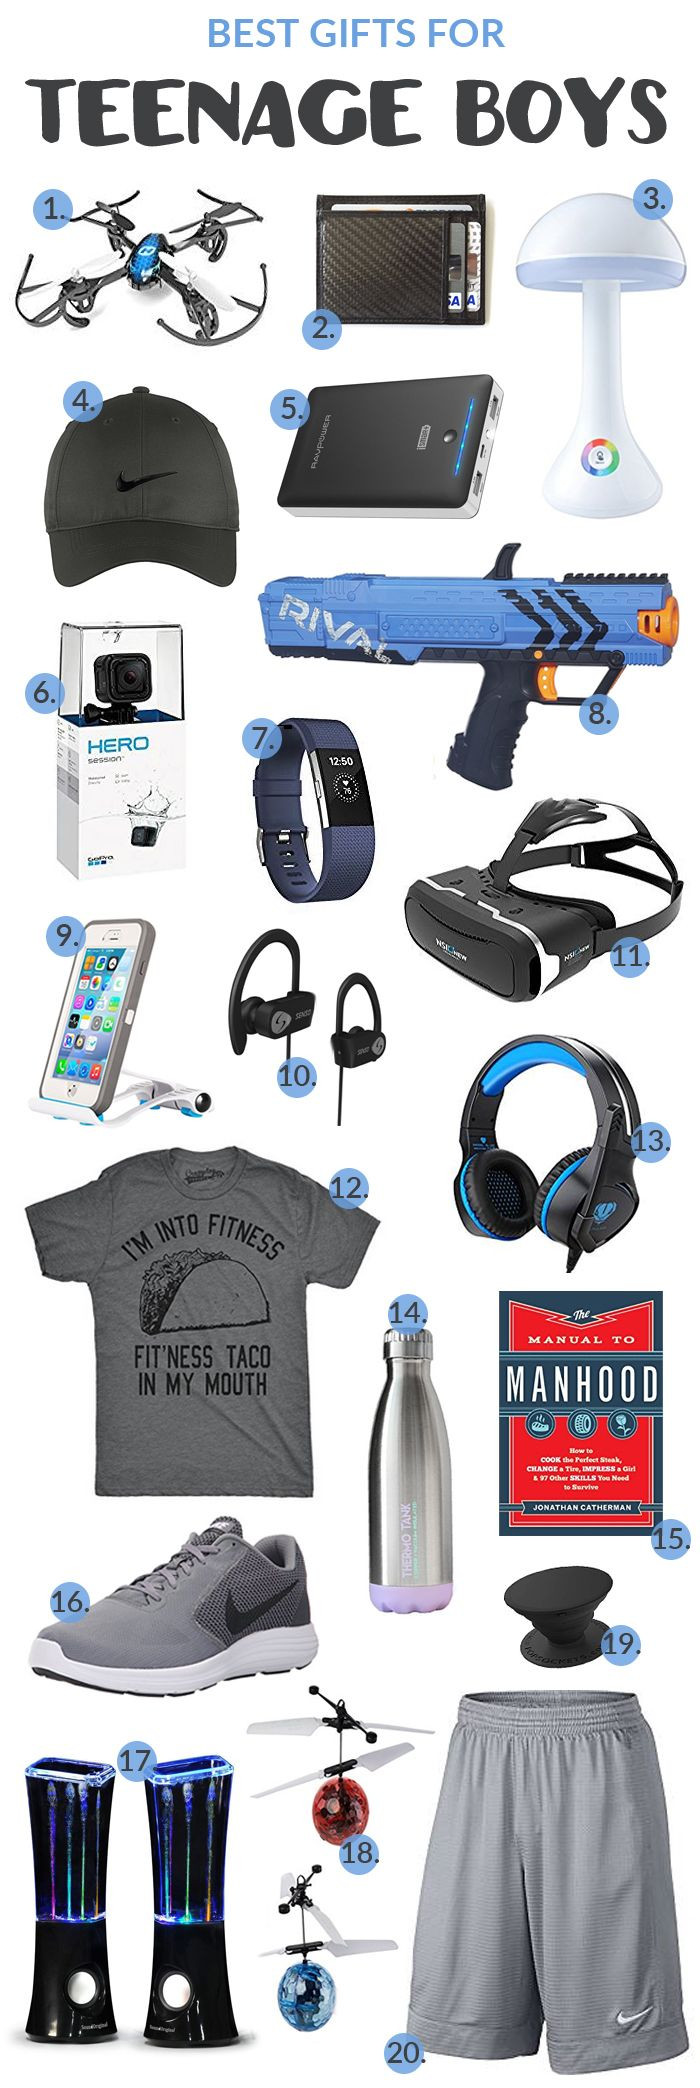 Best ideas about Boys Gift Ideas . Save or Pin Best Gifts for Teenage Boys Now.